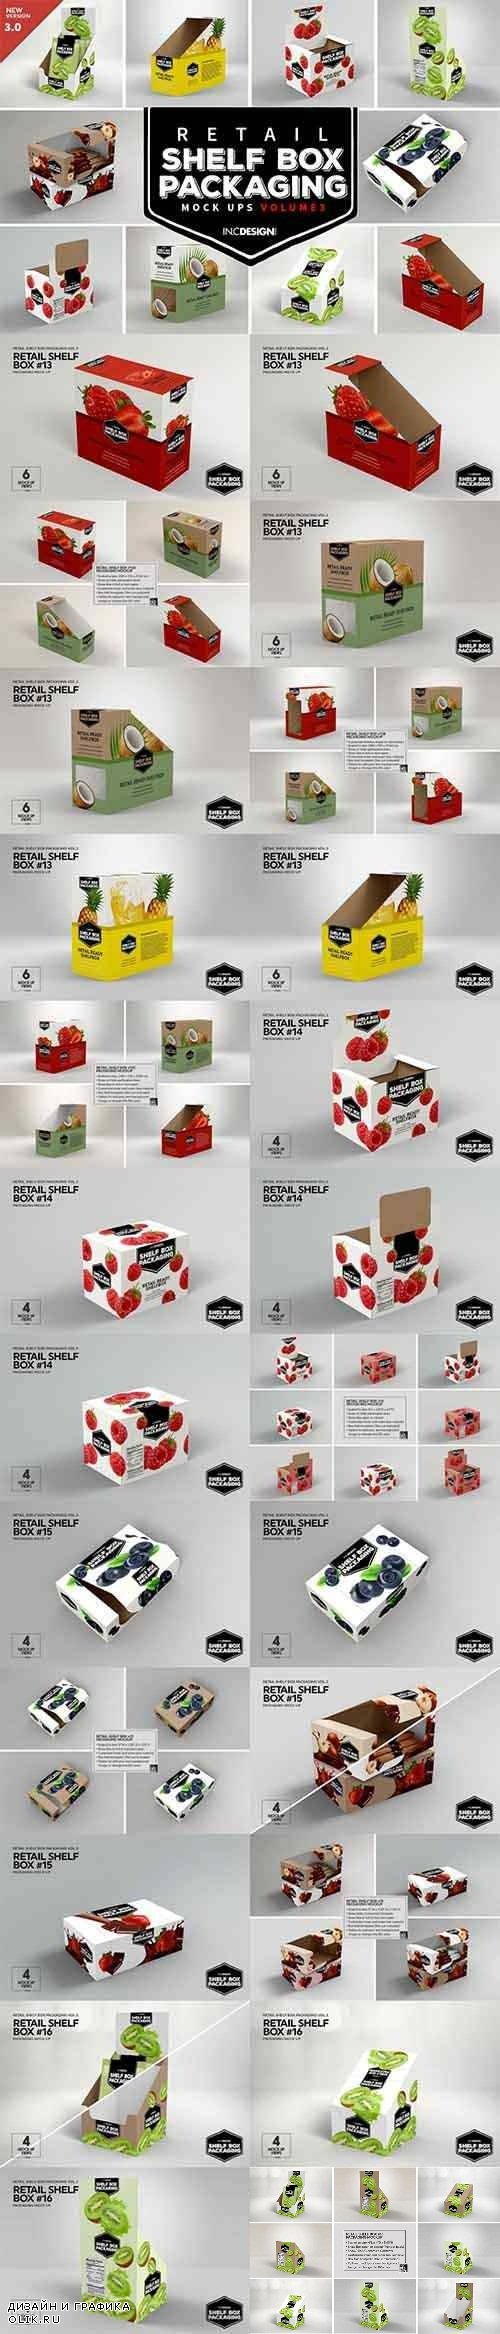 Retail Shelf Box Packaging MockUps3 3263727